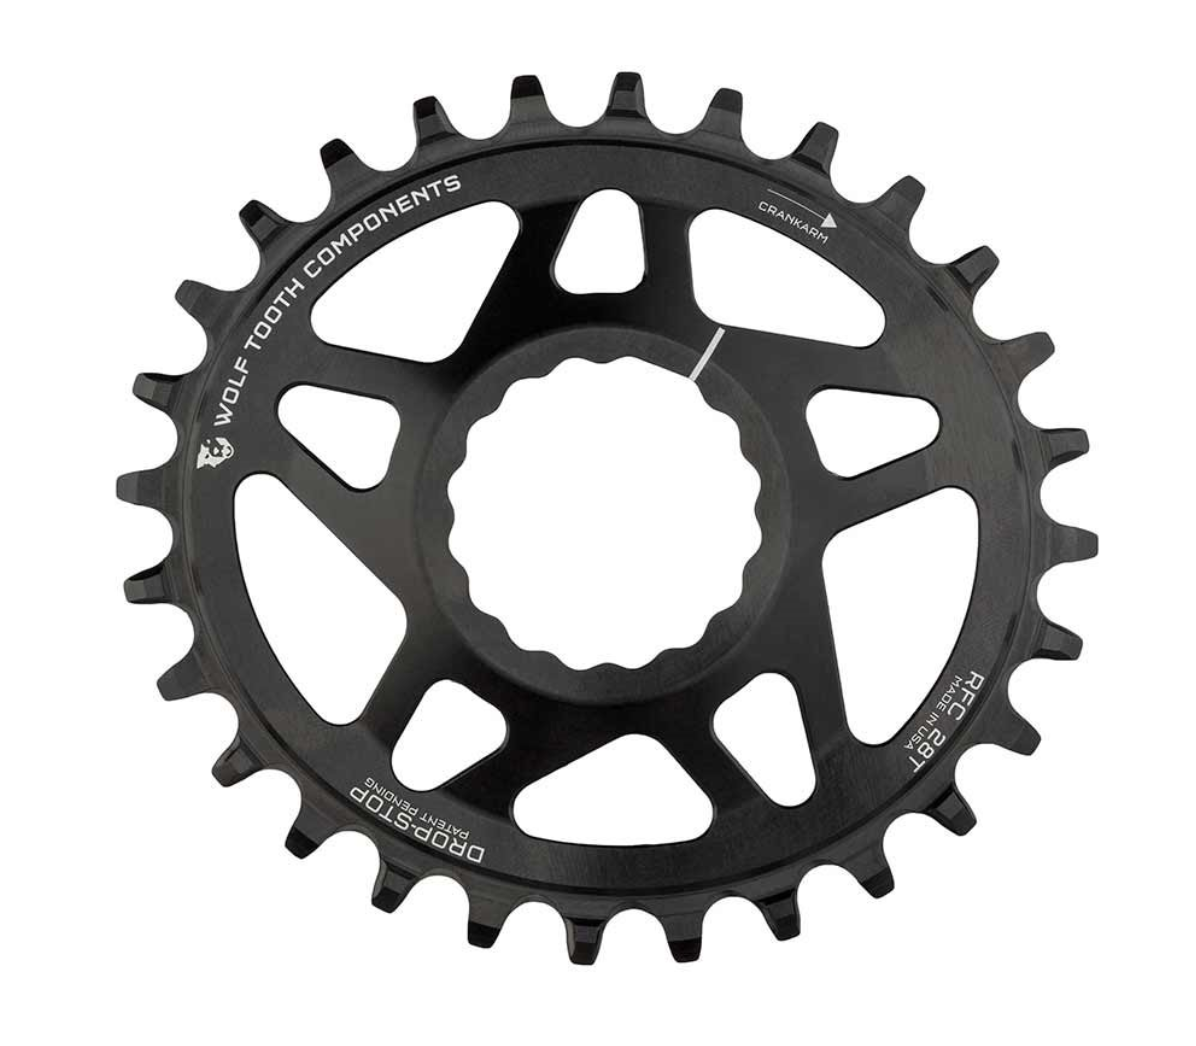 Wolf Tooth Drop-Stop 9-10-11sp Elliptical Chainring 34T